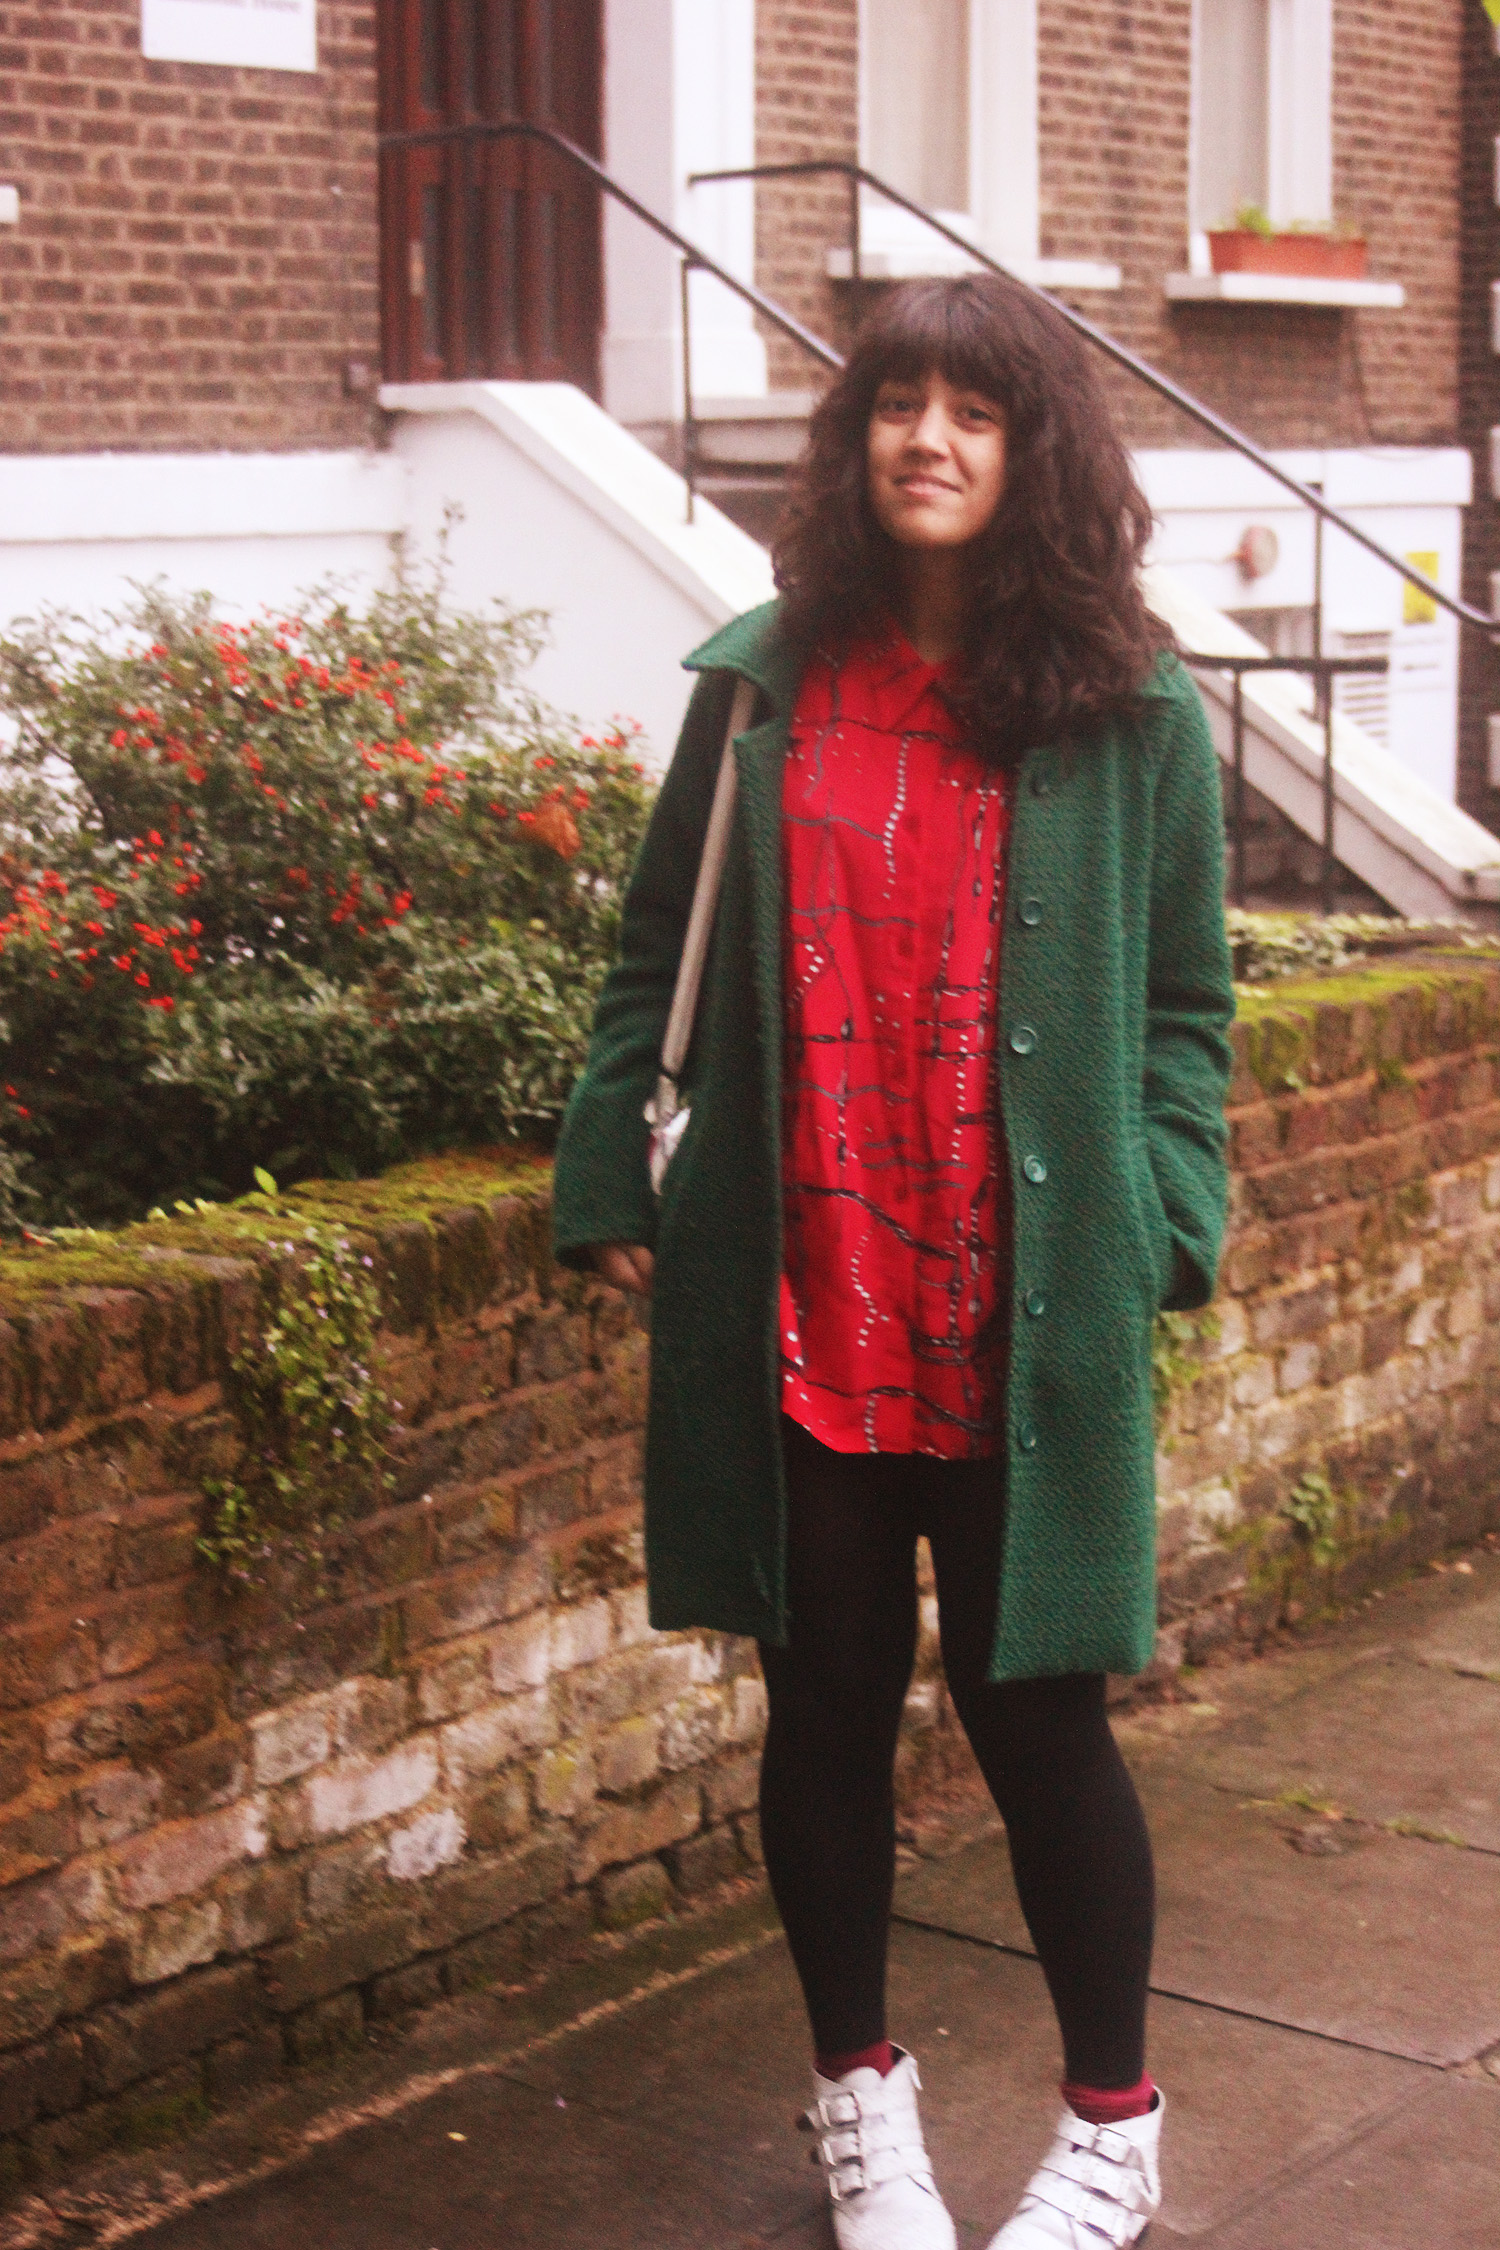 red vintage weird pattern blouse 80s pearls chains kentish town green snufkin coat white rhinestone boots outside gardens